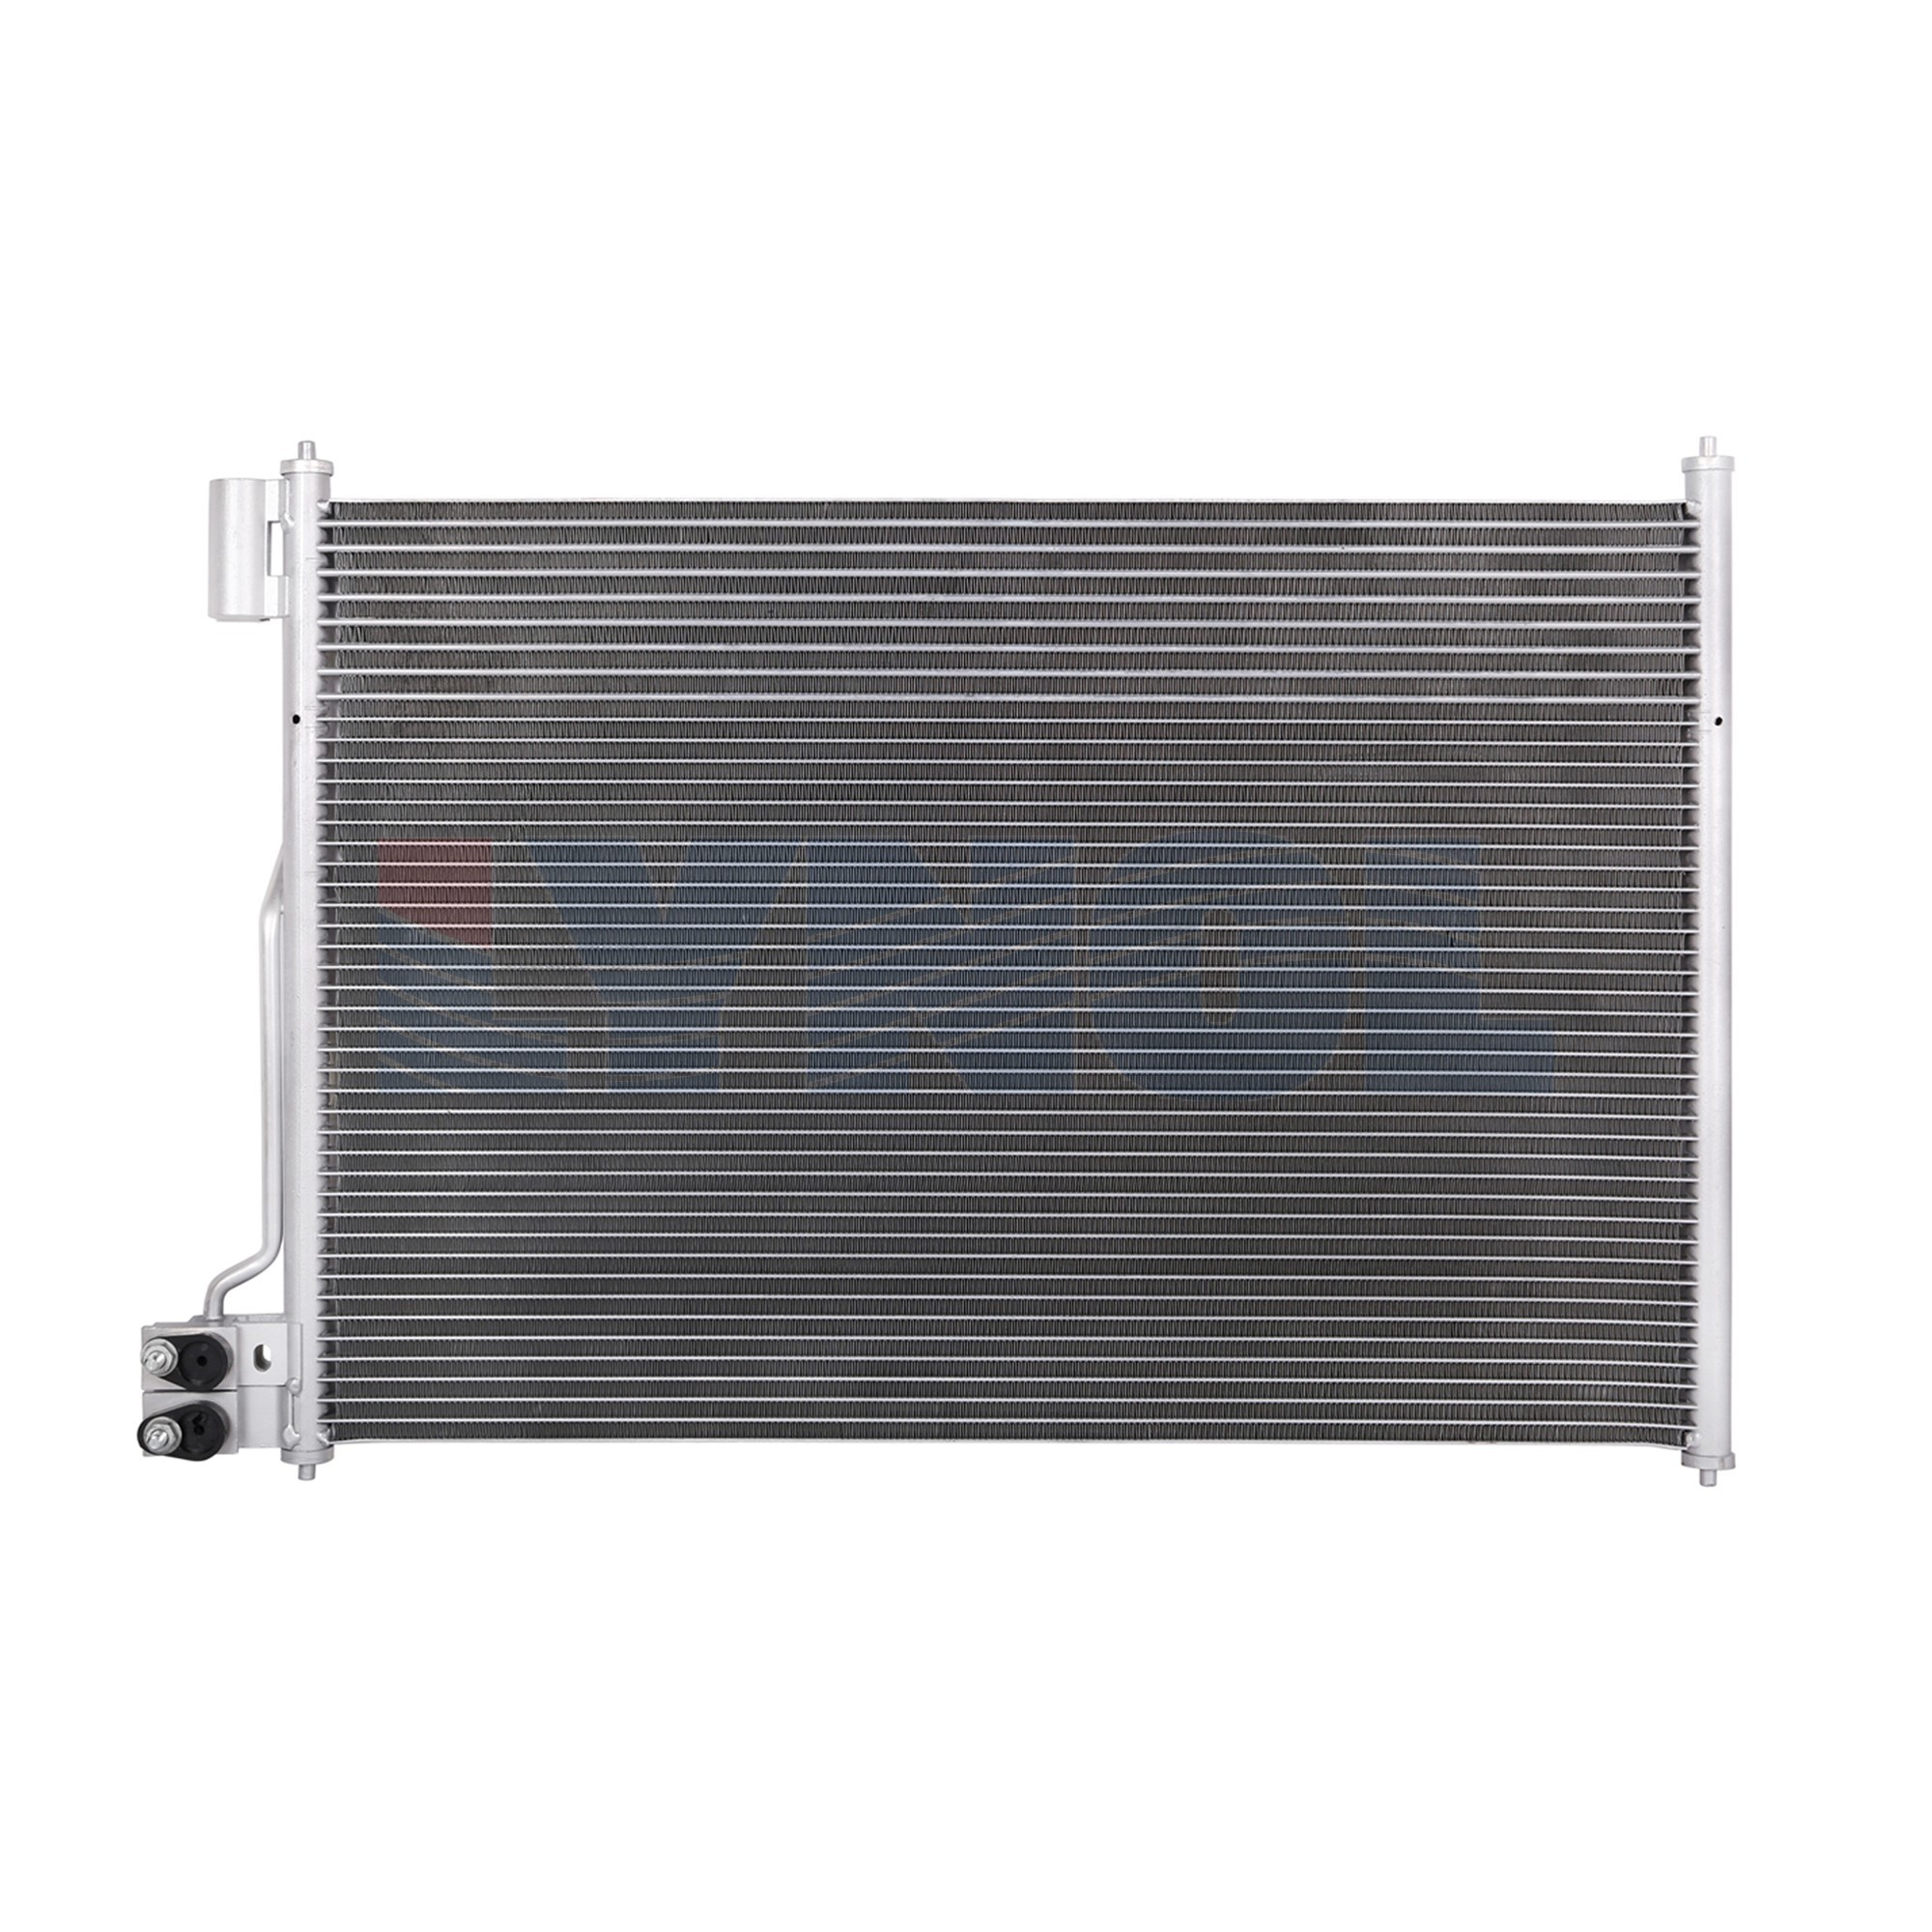 AC3557 - AC Condensers  - 06-11 Ford Crown Victoria V8 4.6L; 06-11 Lincoln Town Car V8 4.6L; 06-08 Mercury Grand Marquis V8 4.6L